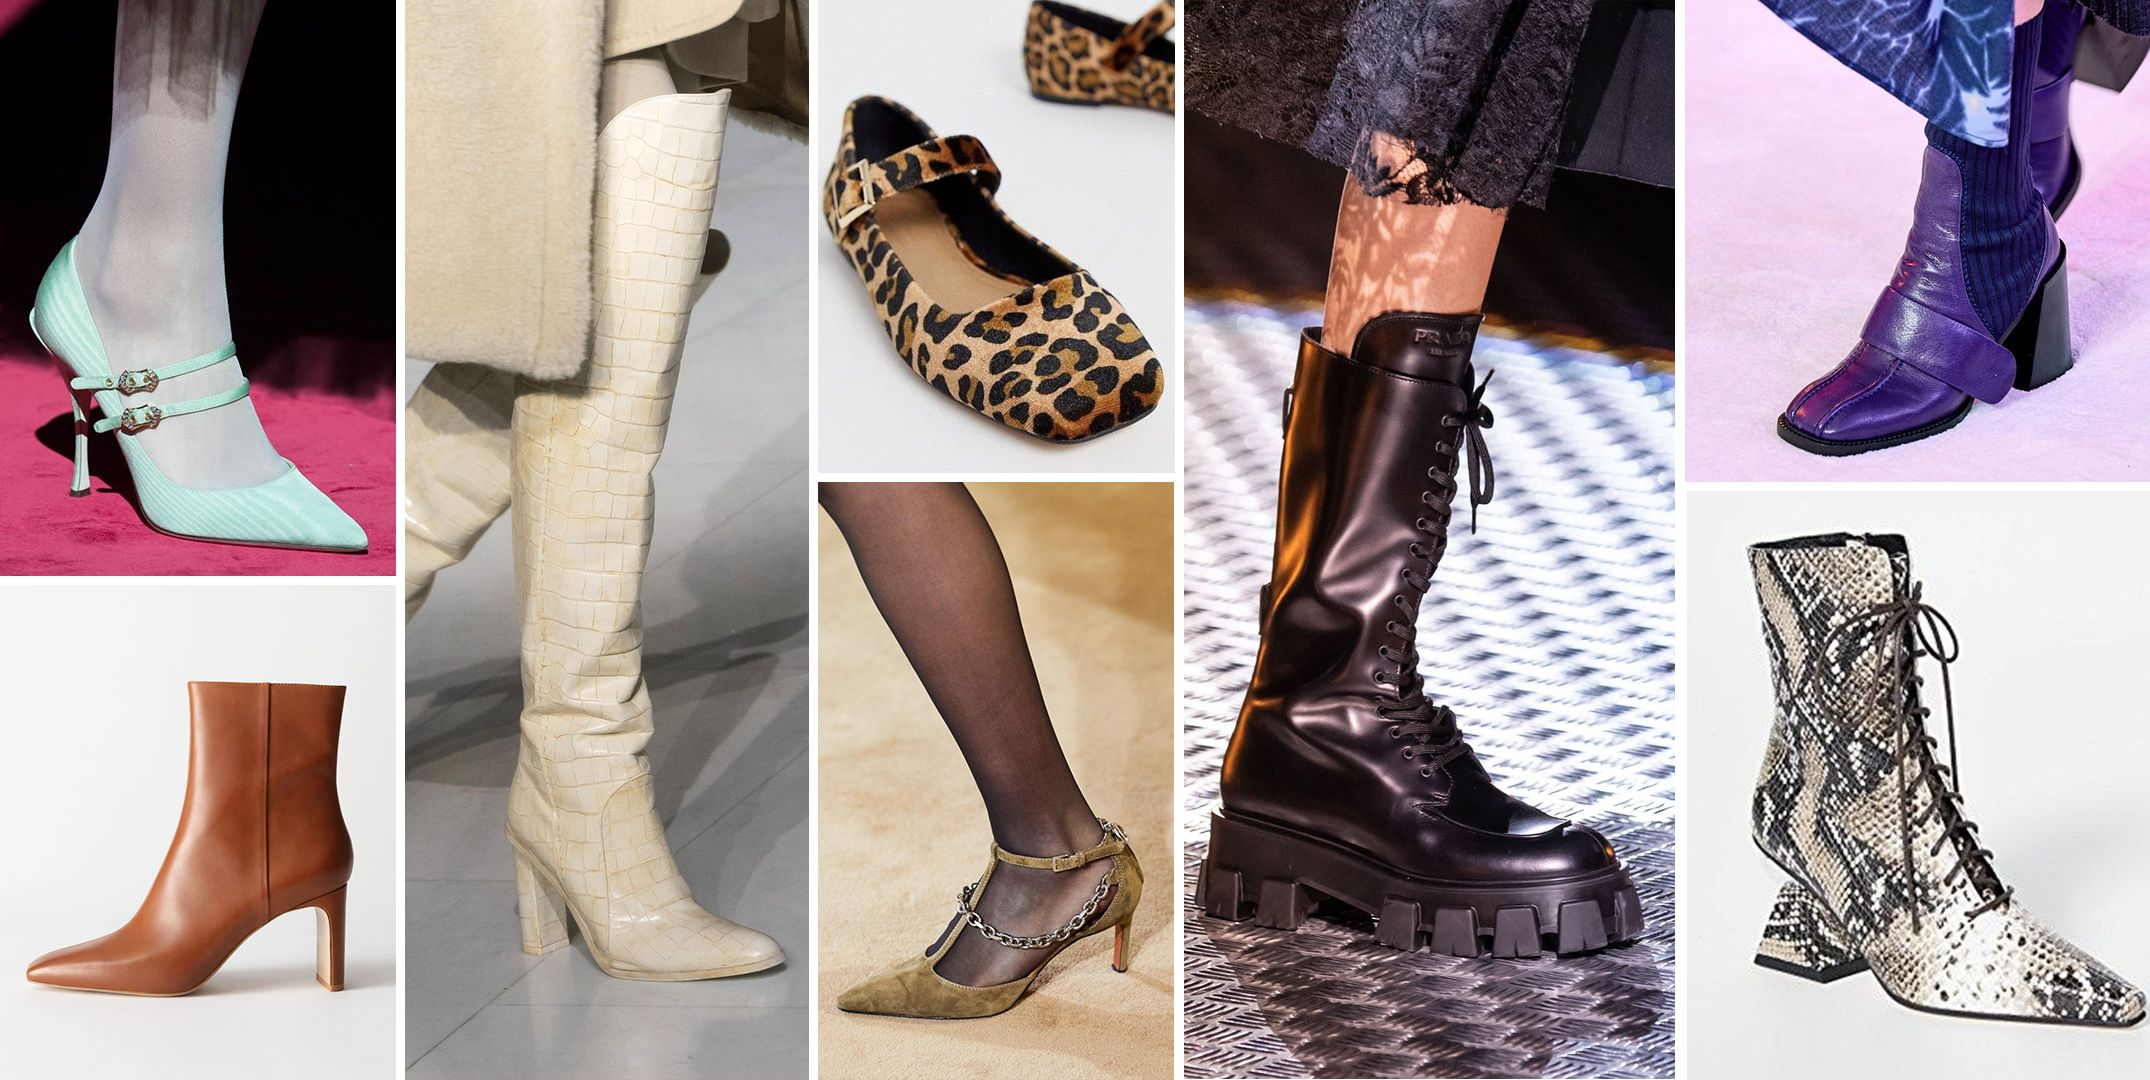 Shoe Trends Fall 2020.12 Cute Winter Shoe And Boot Trends For Winter 2019 2020